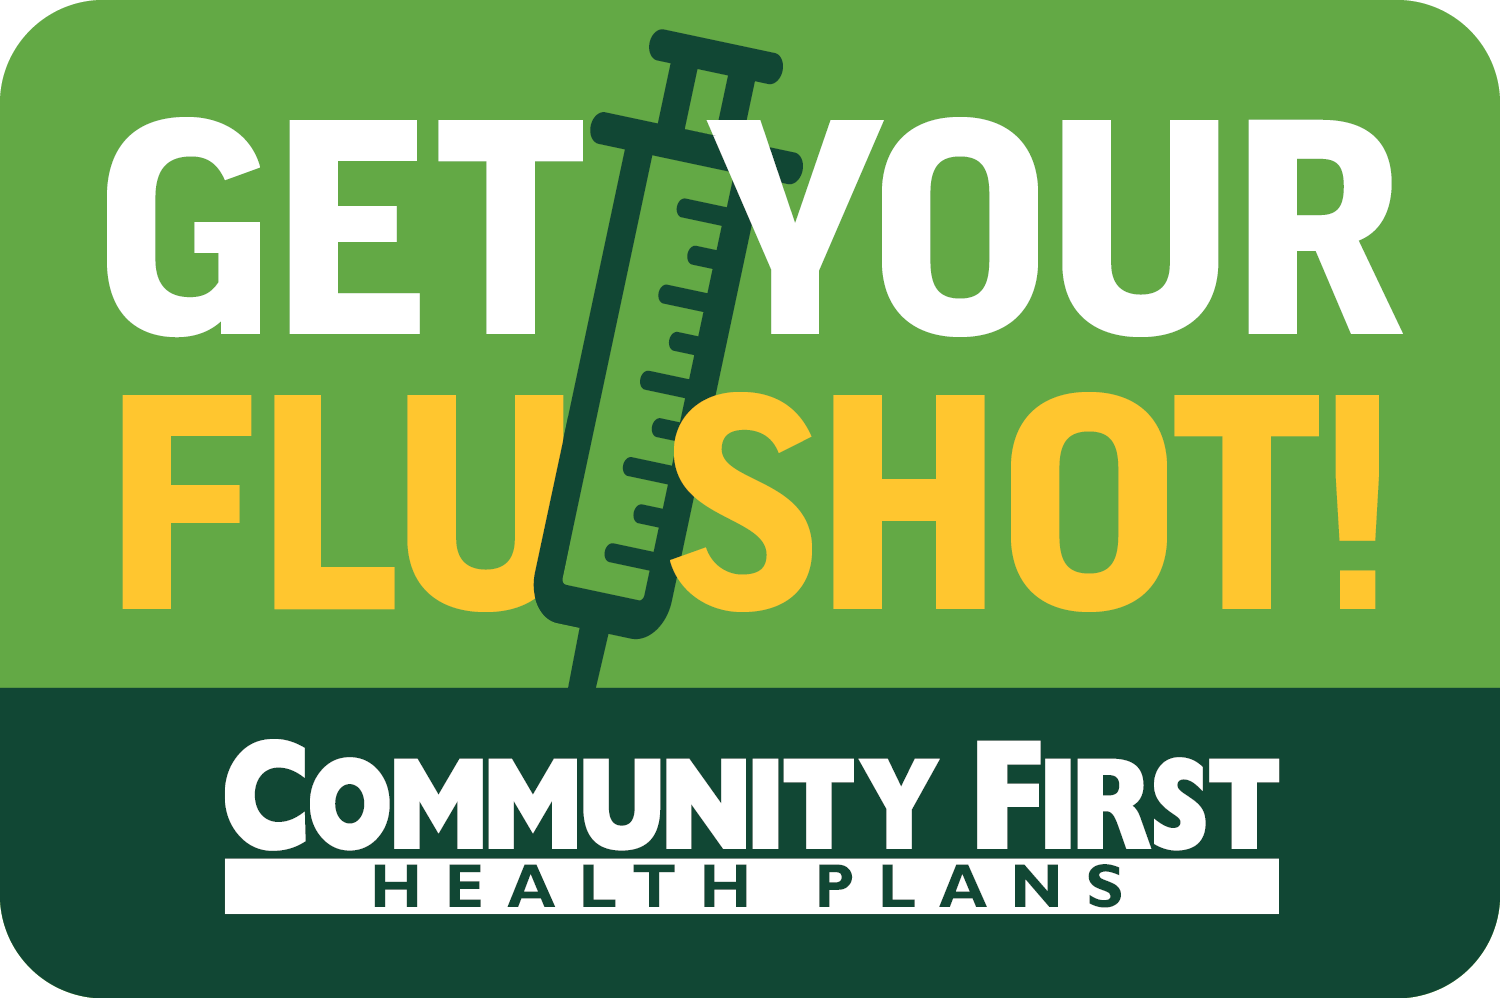 Community First Health Plans Launches Get Your Flu Shot! Campaign